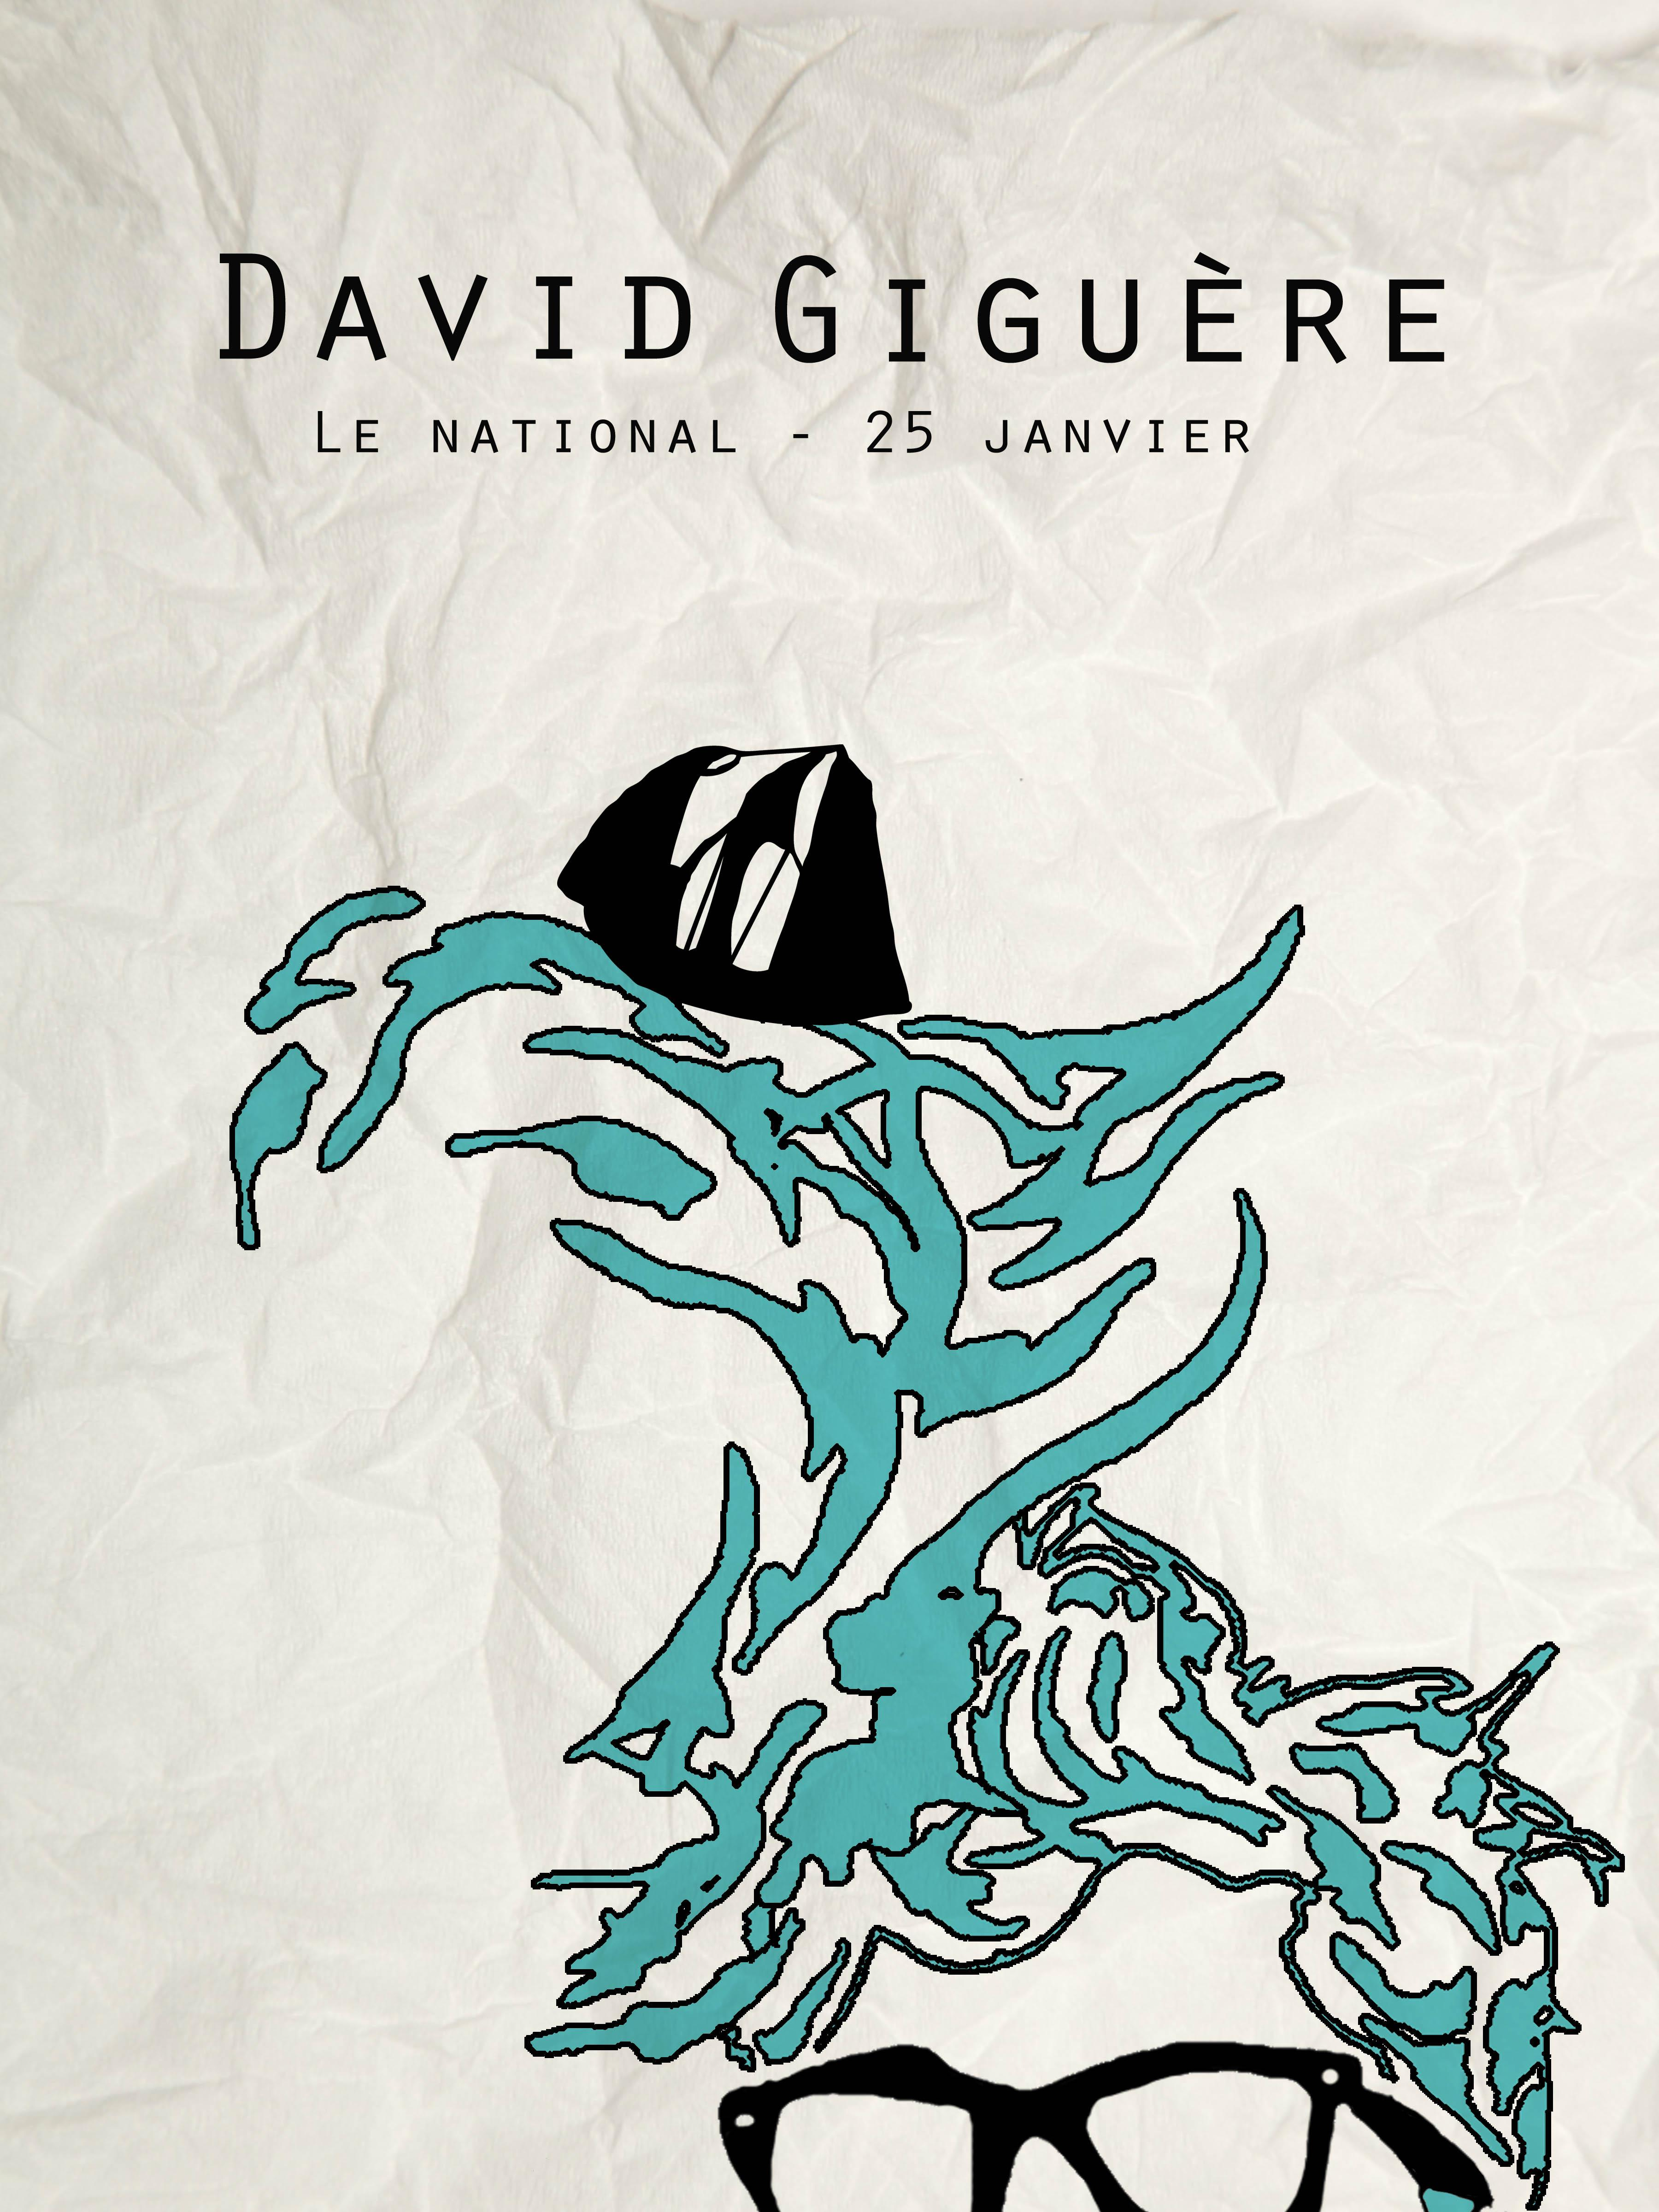 David Giguère - image 3 - student project